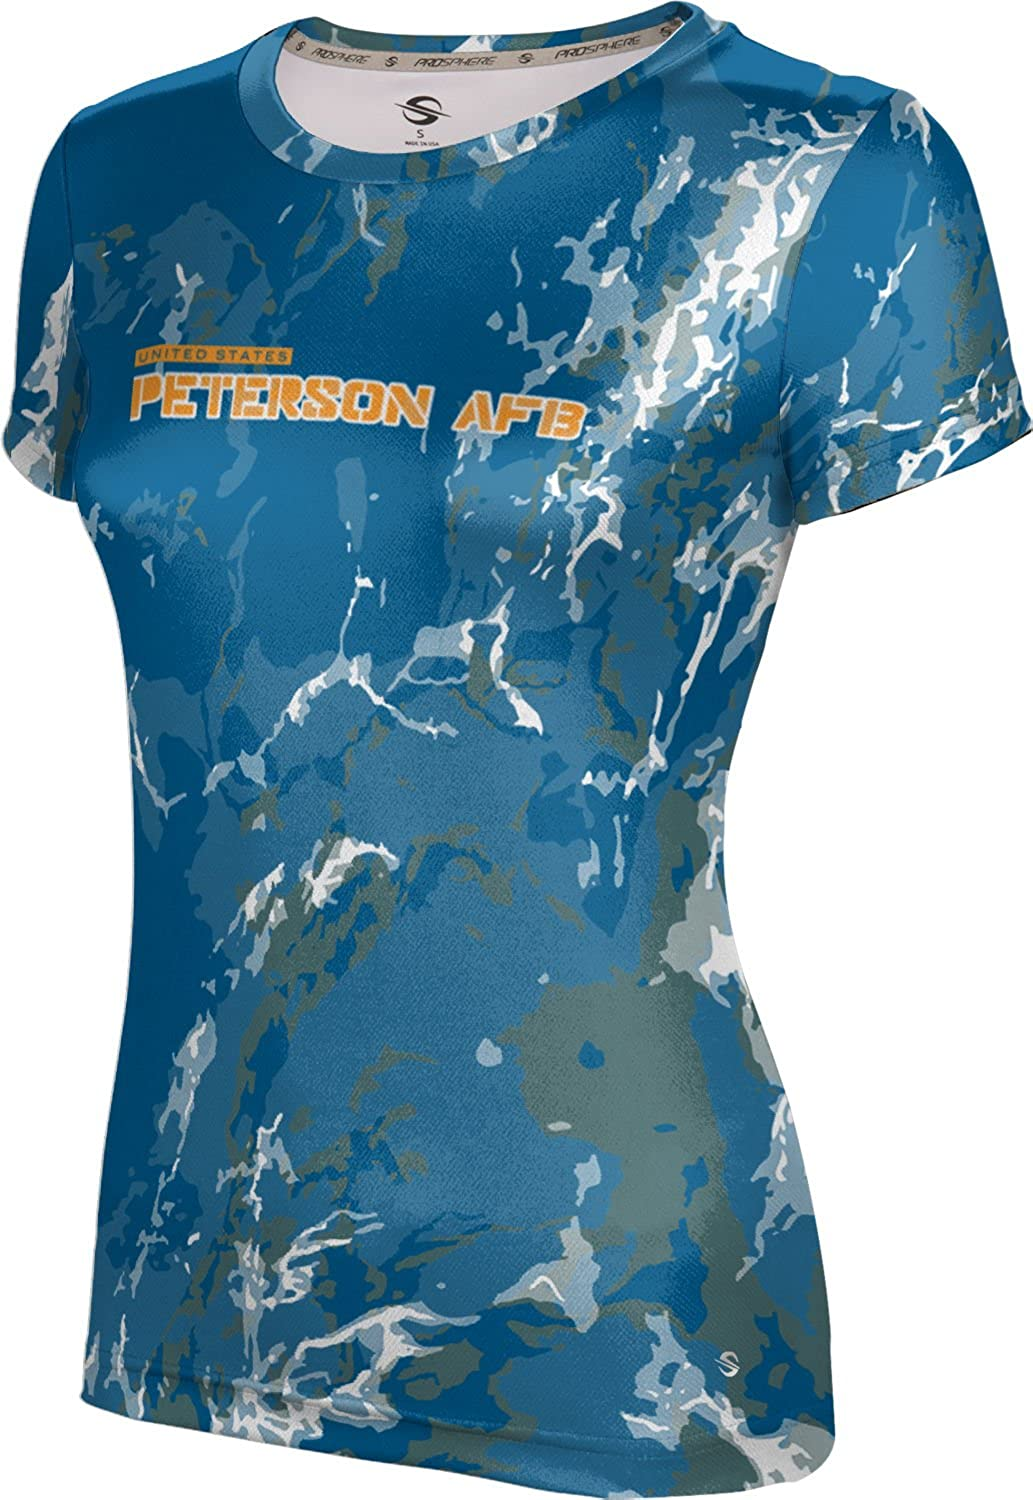 ProSphere Women's Peterson AFB Military Marble Tech Tee